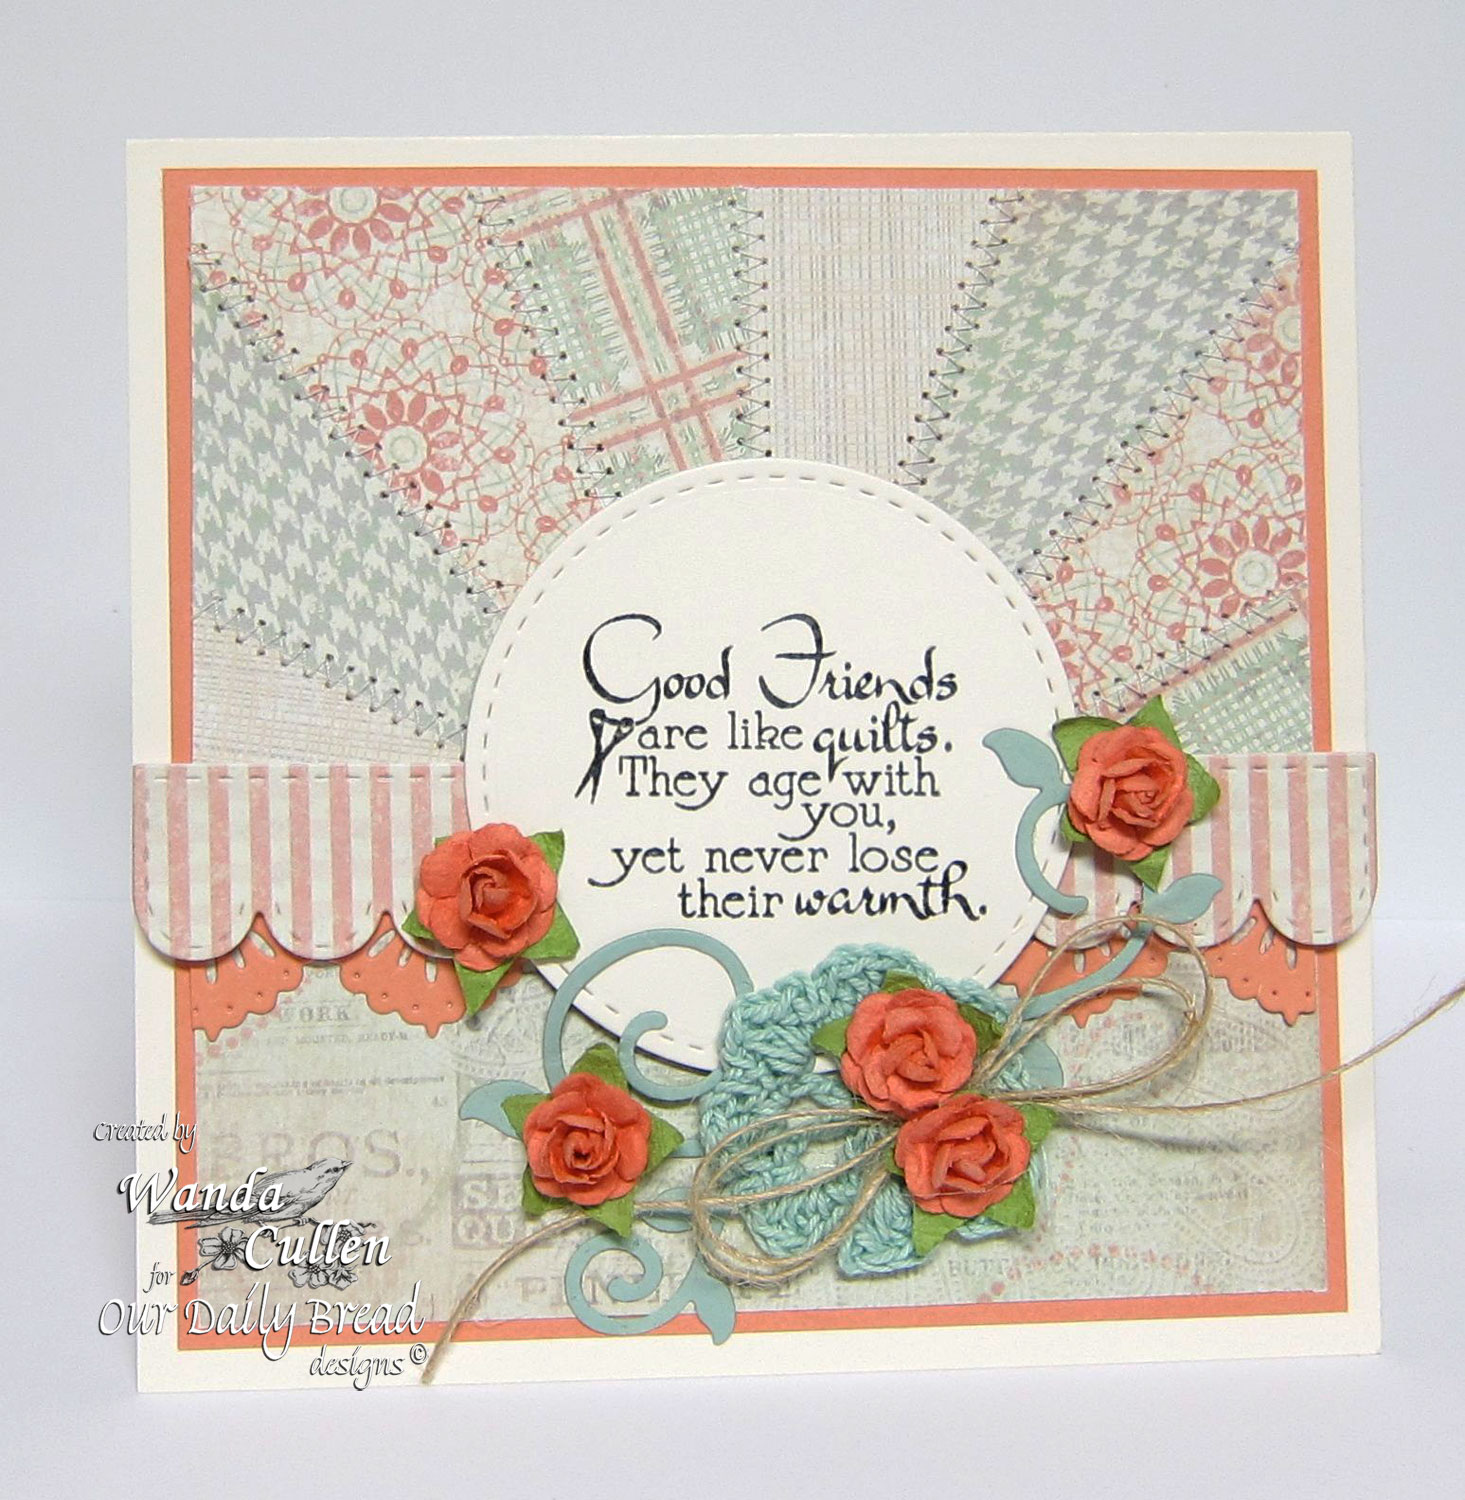 Stamps - Our Daily Bread Designs Quilts, ODBD Custom Beautiful Borders Dies, ODBD Custom Fancy Foliage Die, ODBD Soulful Stitches Paper Collection